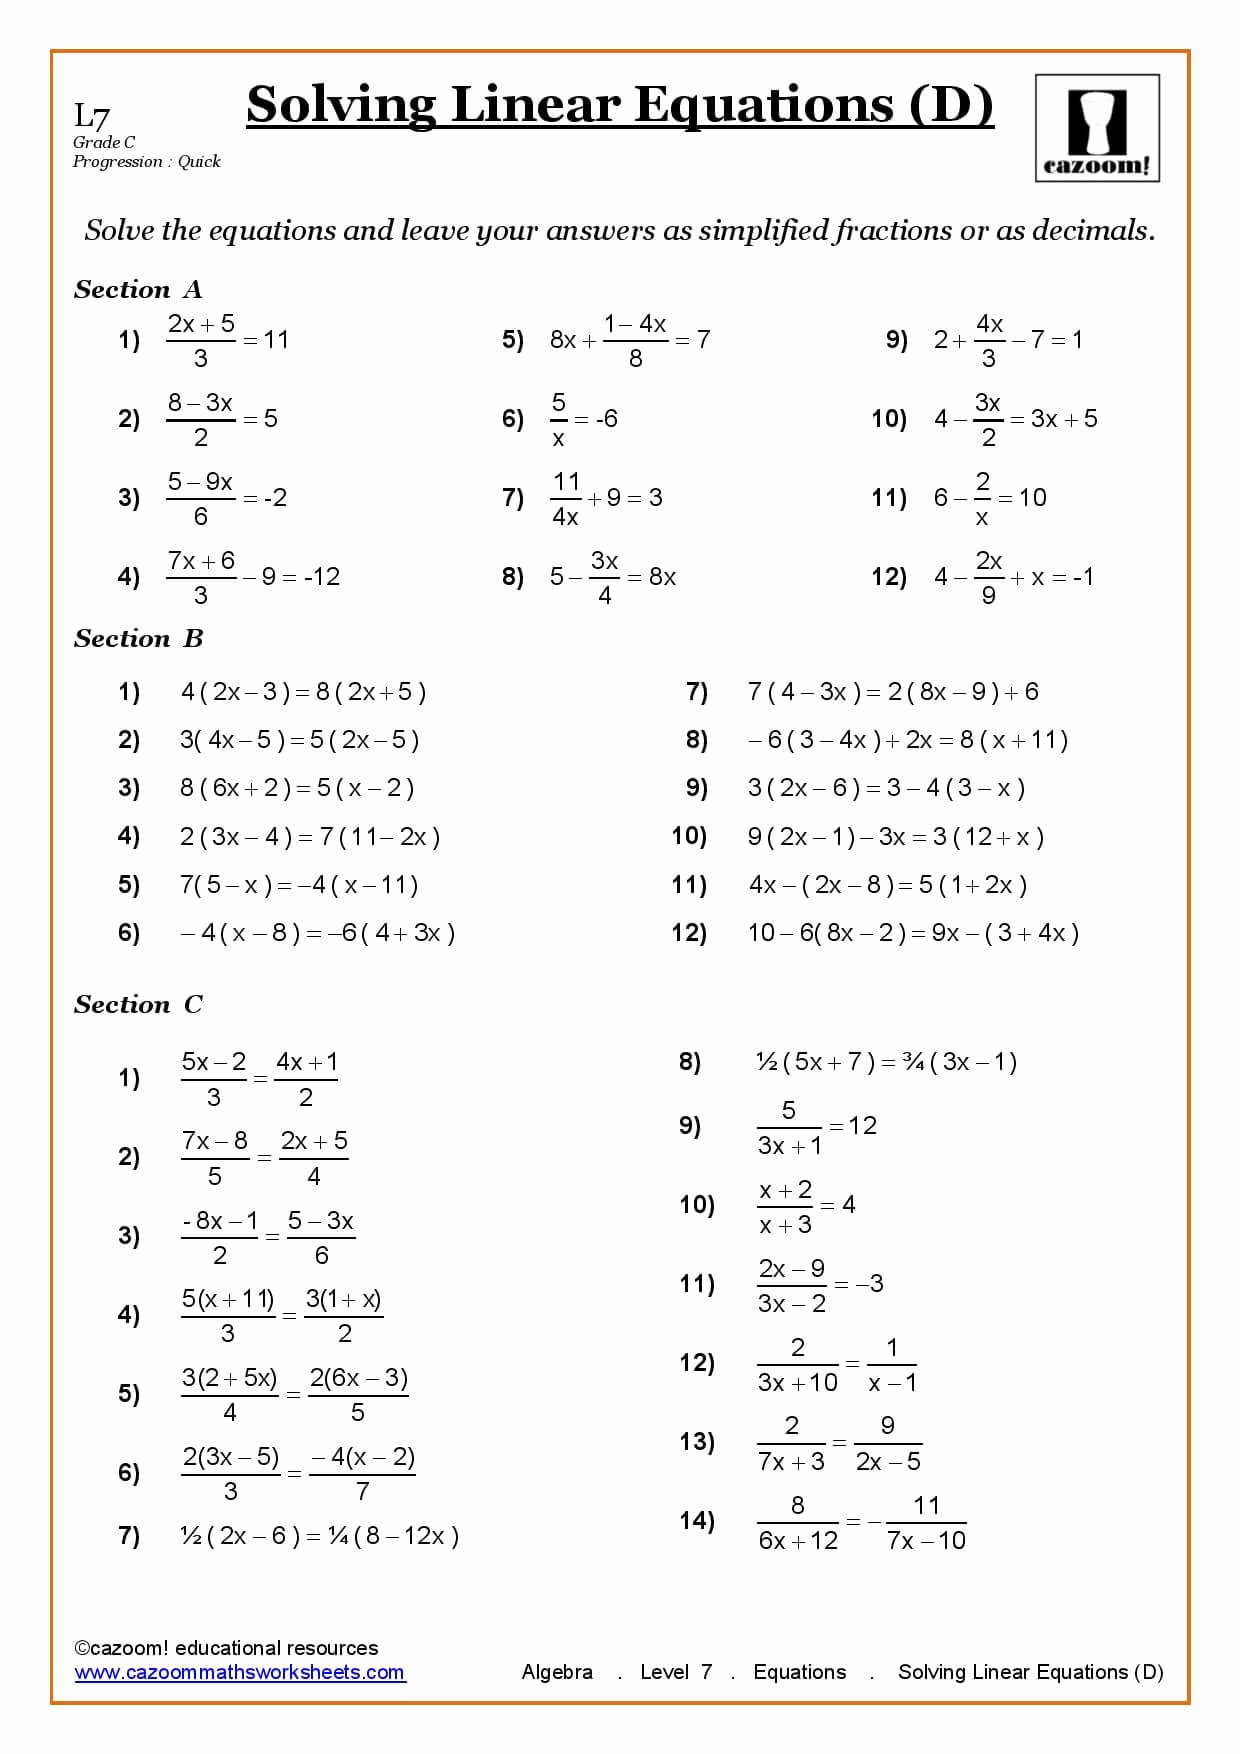 Simplifying Linear Expressions Worksheet Luxury solving Linear Equations